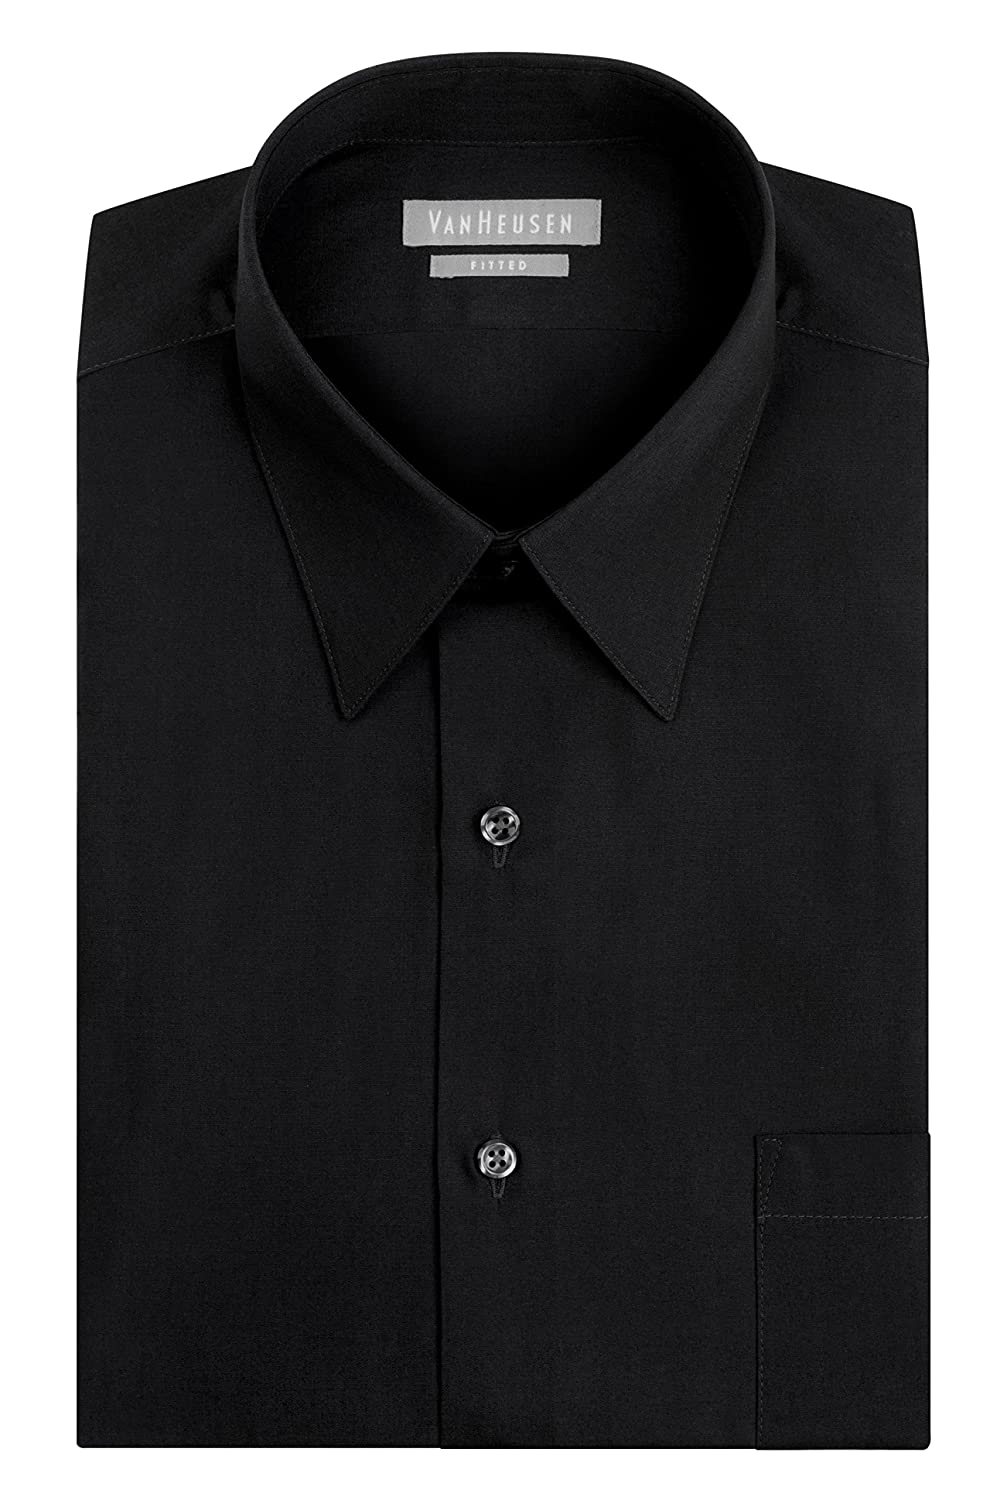 Van Heusen Men's Poplin Fitted Solid Point Collar Dress Shirt at ...